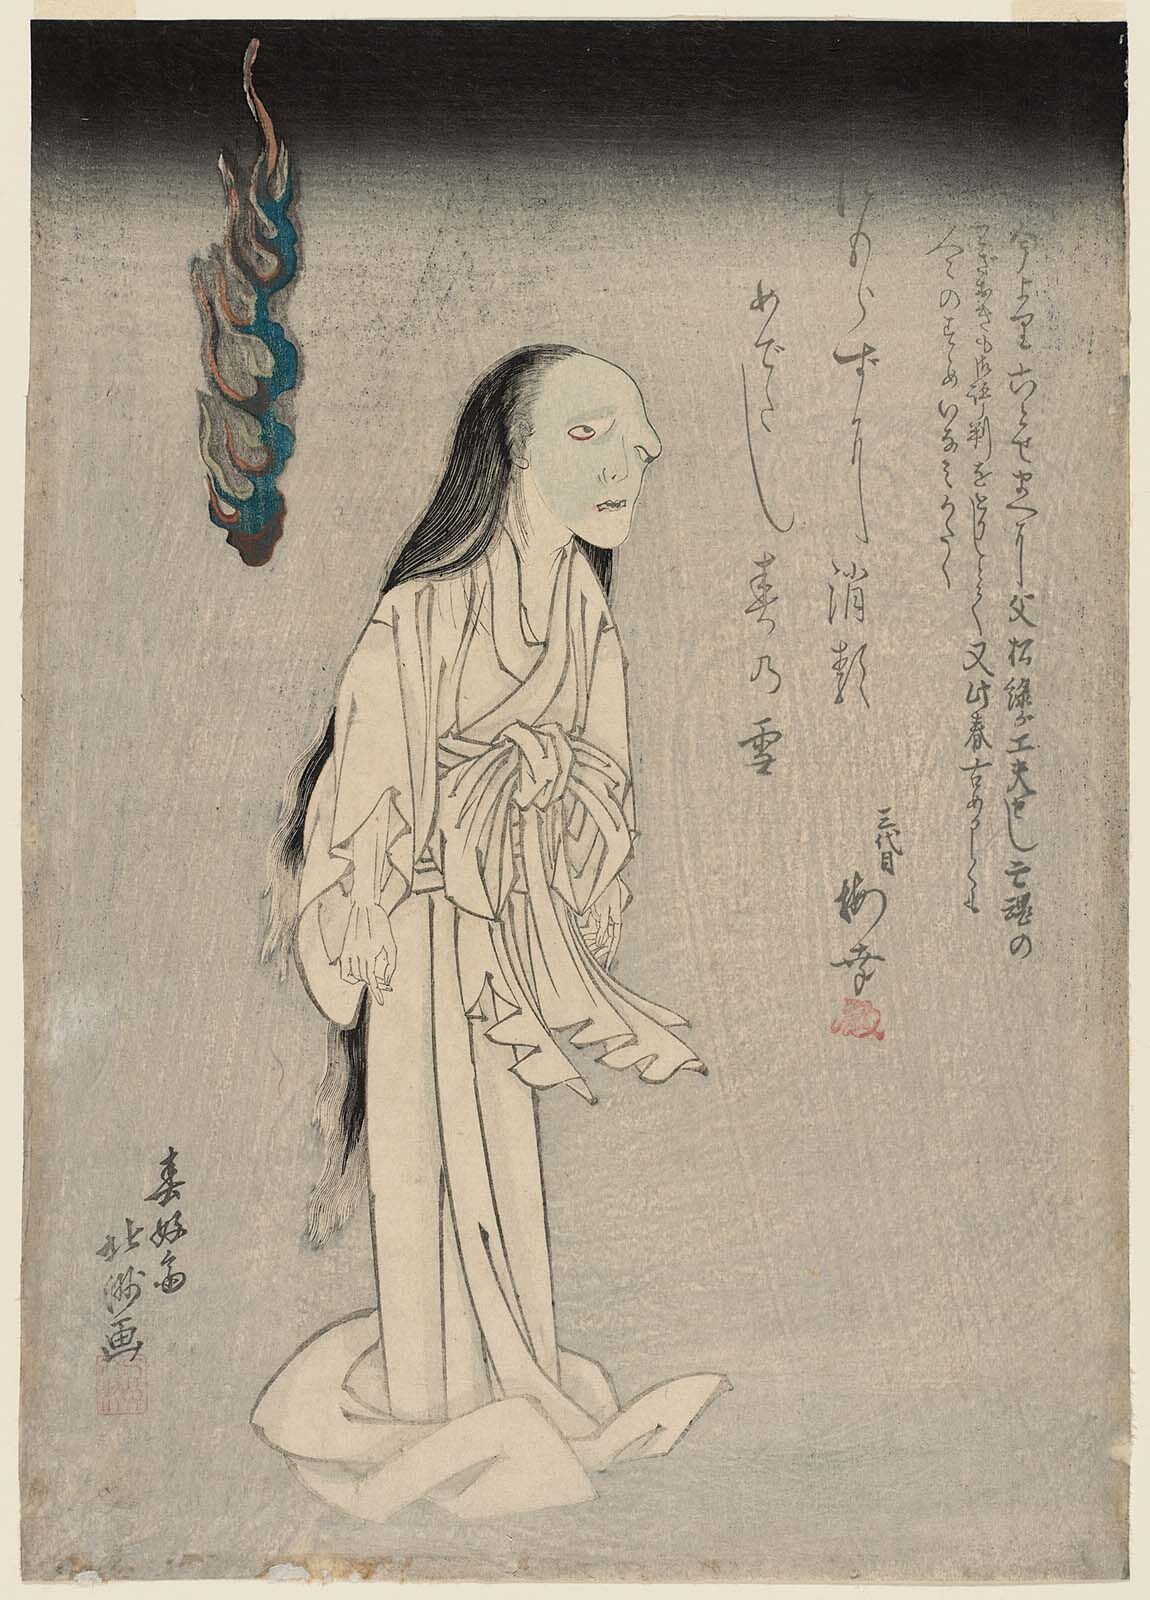 Shunkôsai Hokushû, Actor Onoe Kikugorô III as the Ghost of Oiwa (third state), 1832. Courtesy of The Museum of Fine Arts, Boston.